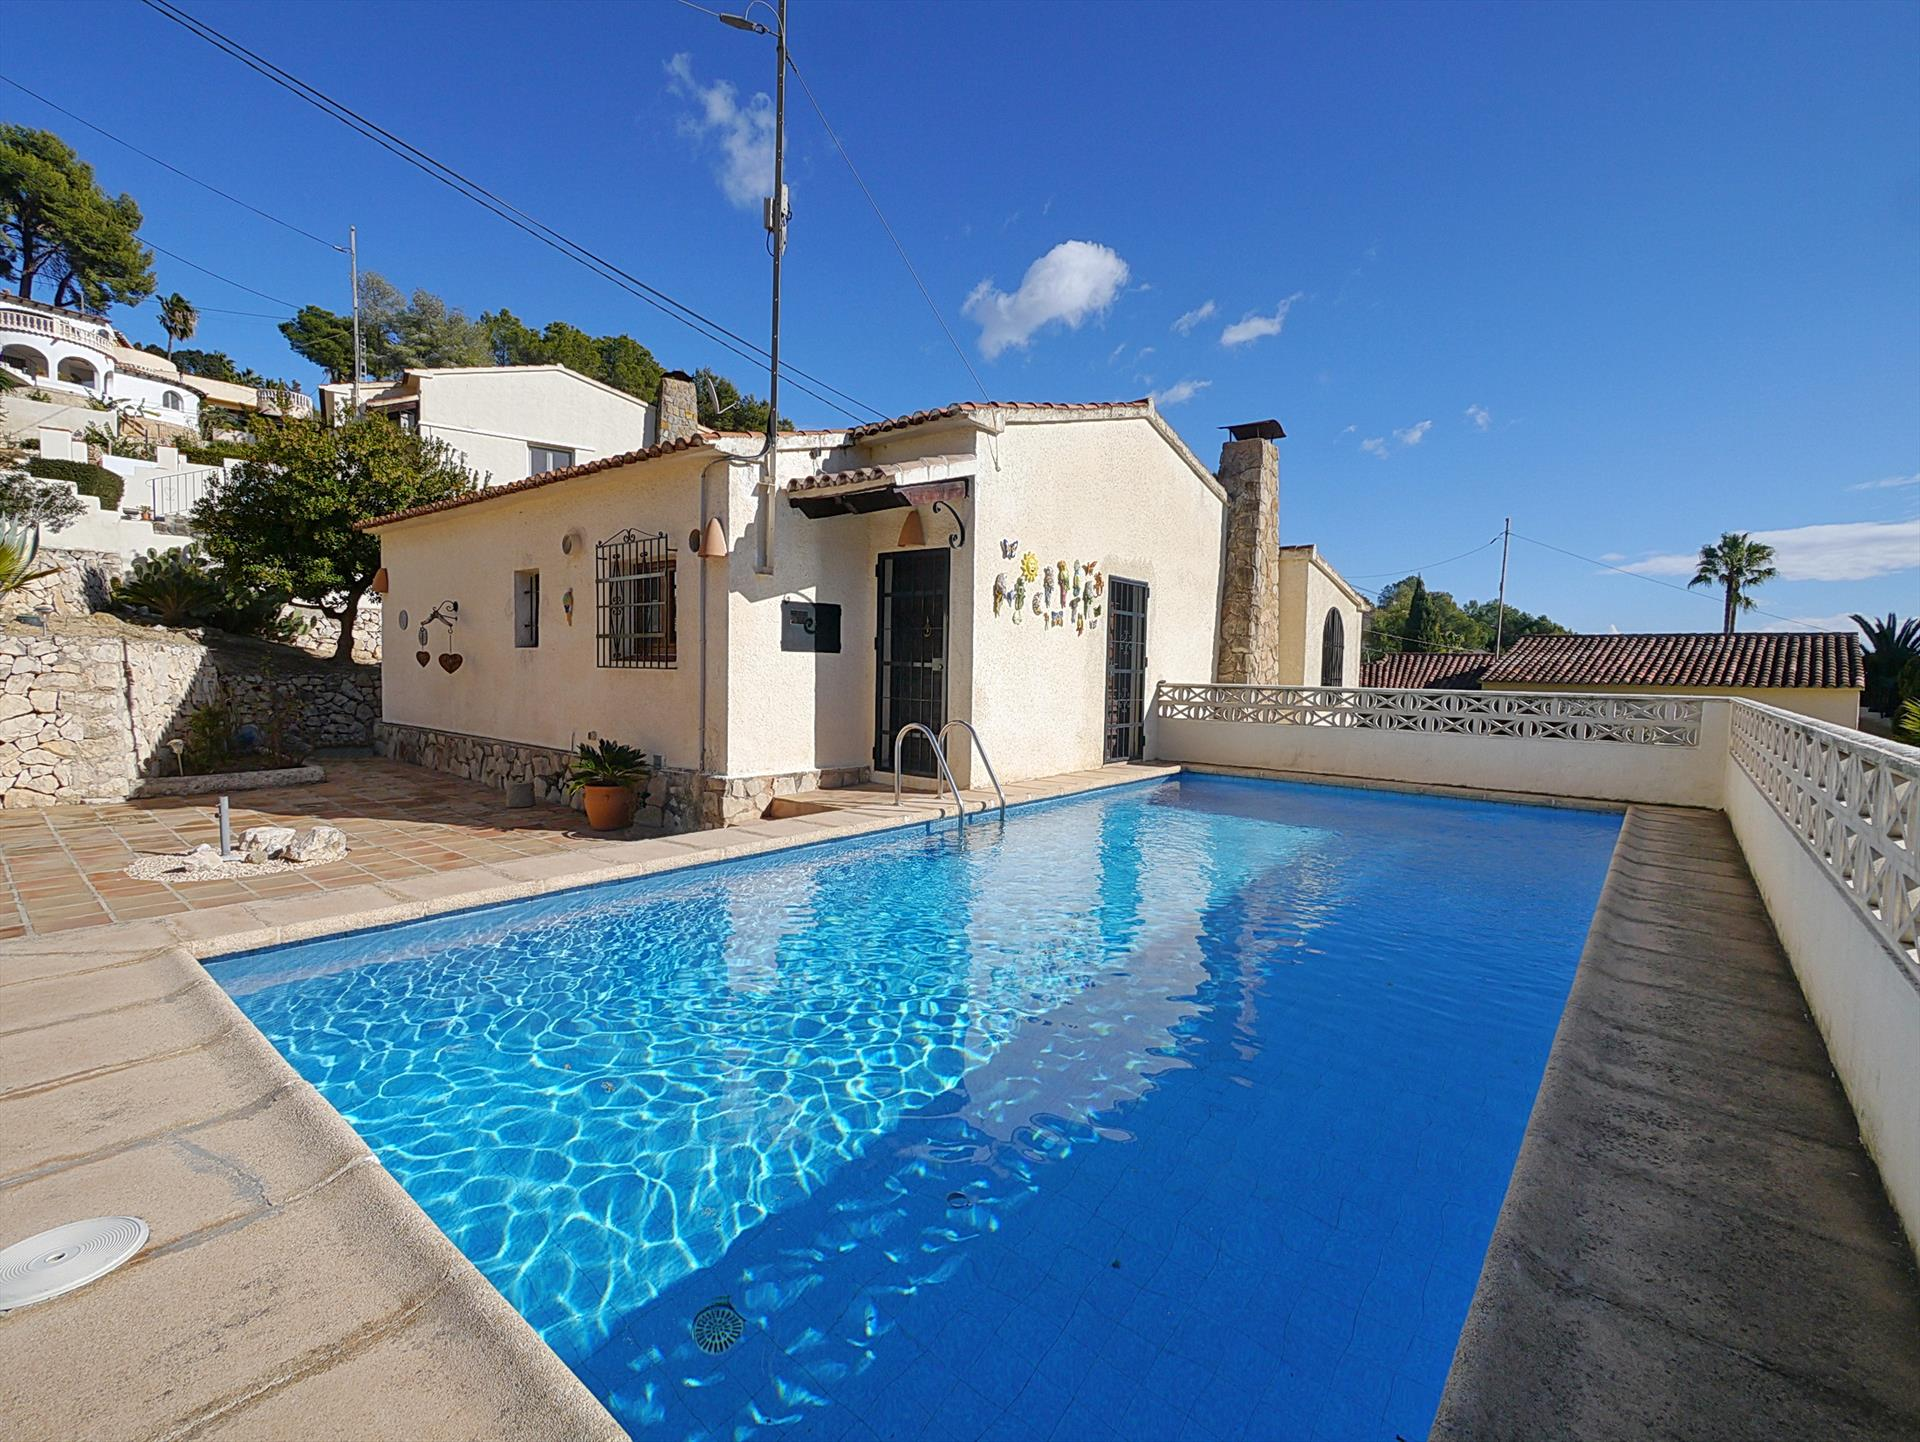 El Refugio, Classic and romantic villa in Benissa, on the Costa Blanca, Spain  with private pool for 6 persons.....